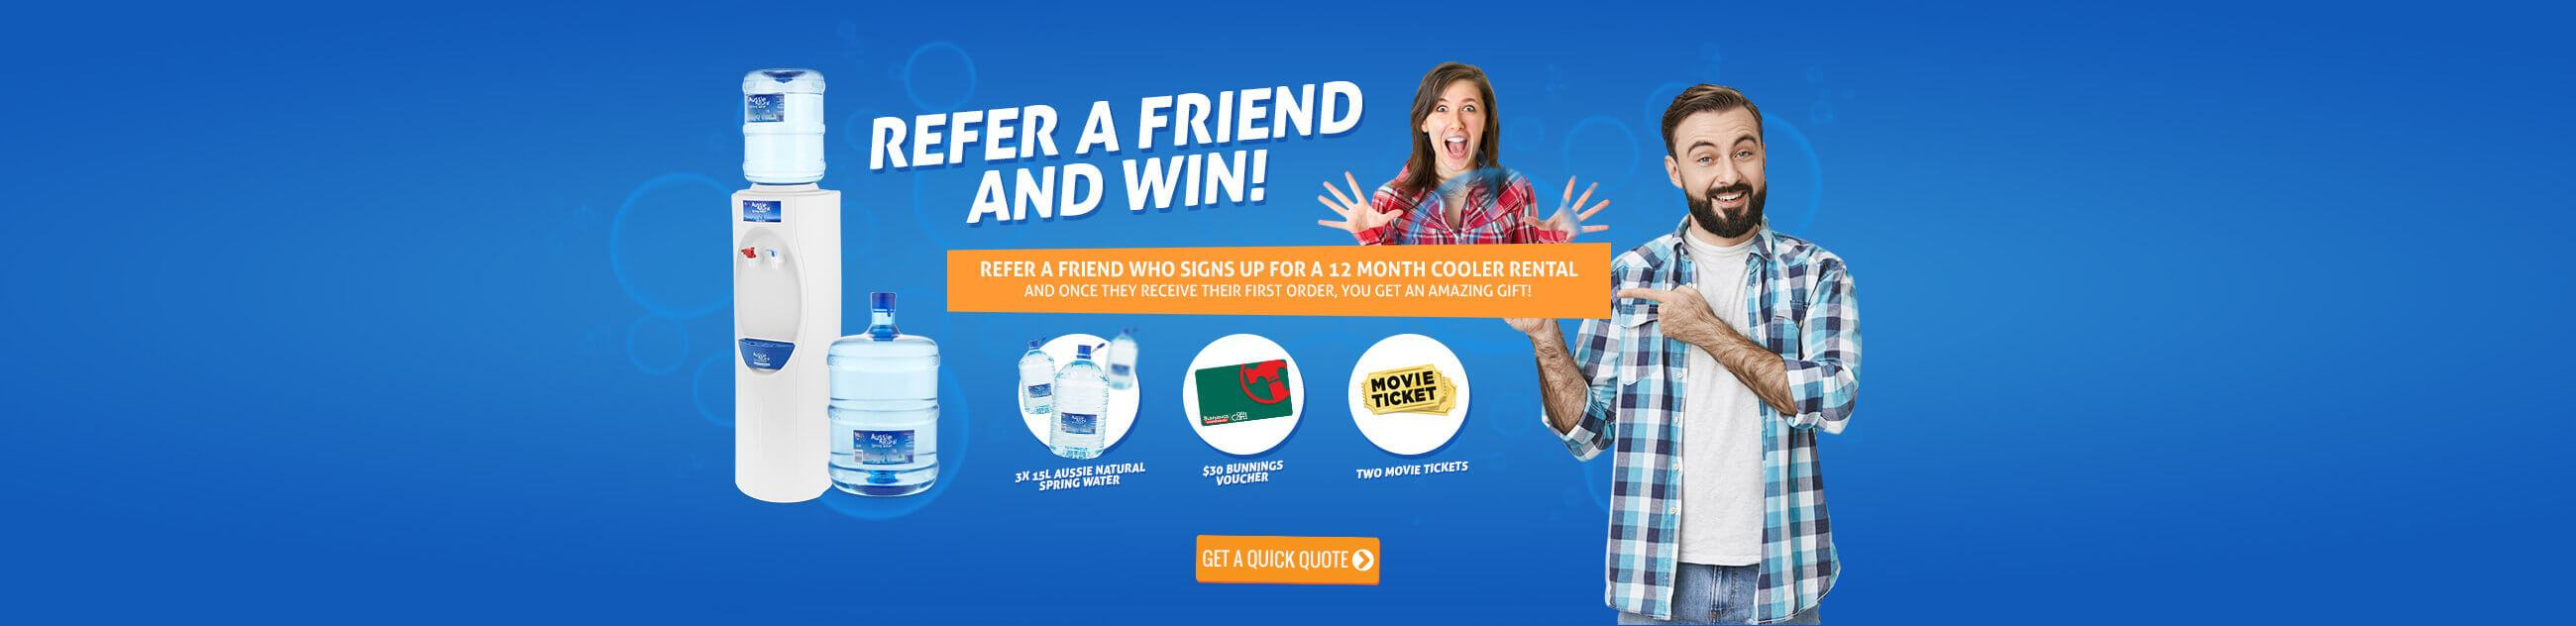 Refer a Friend Offers - Aussie Natural